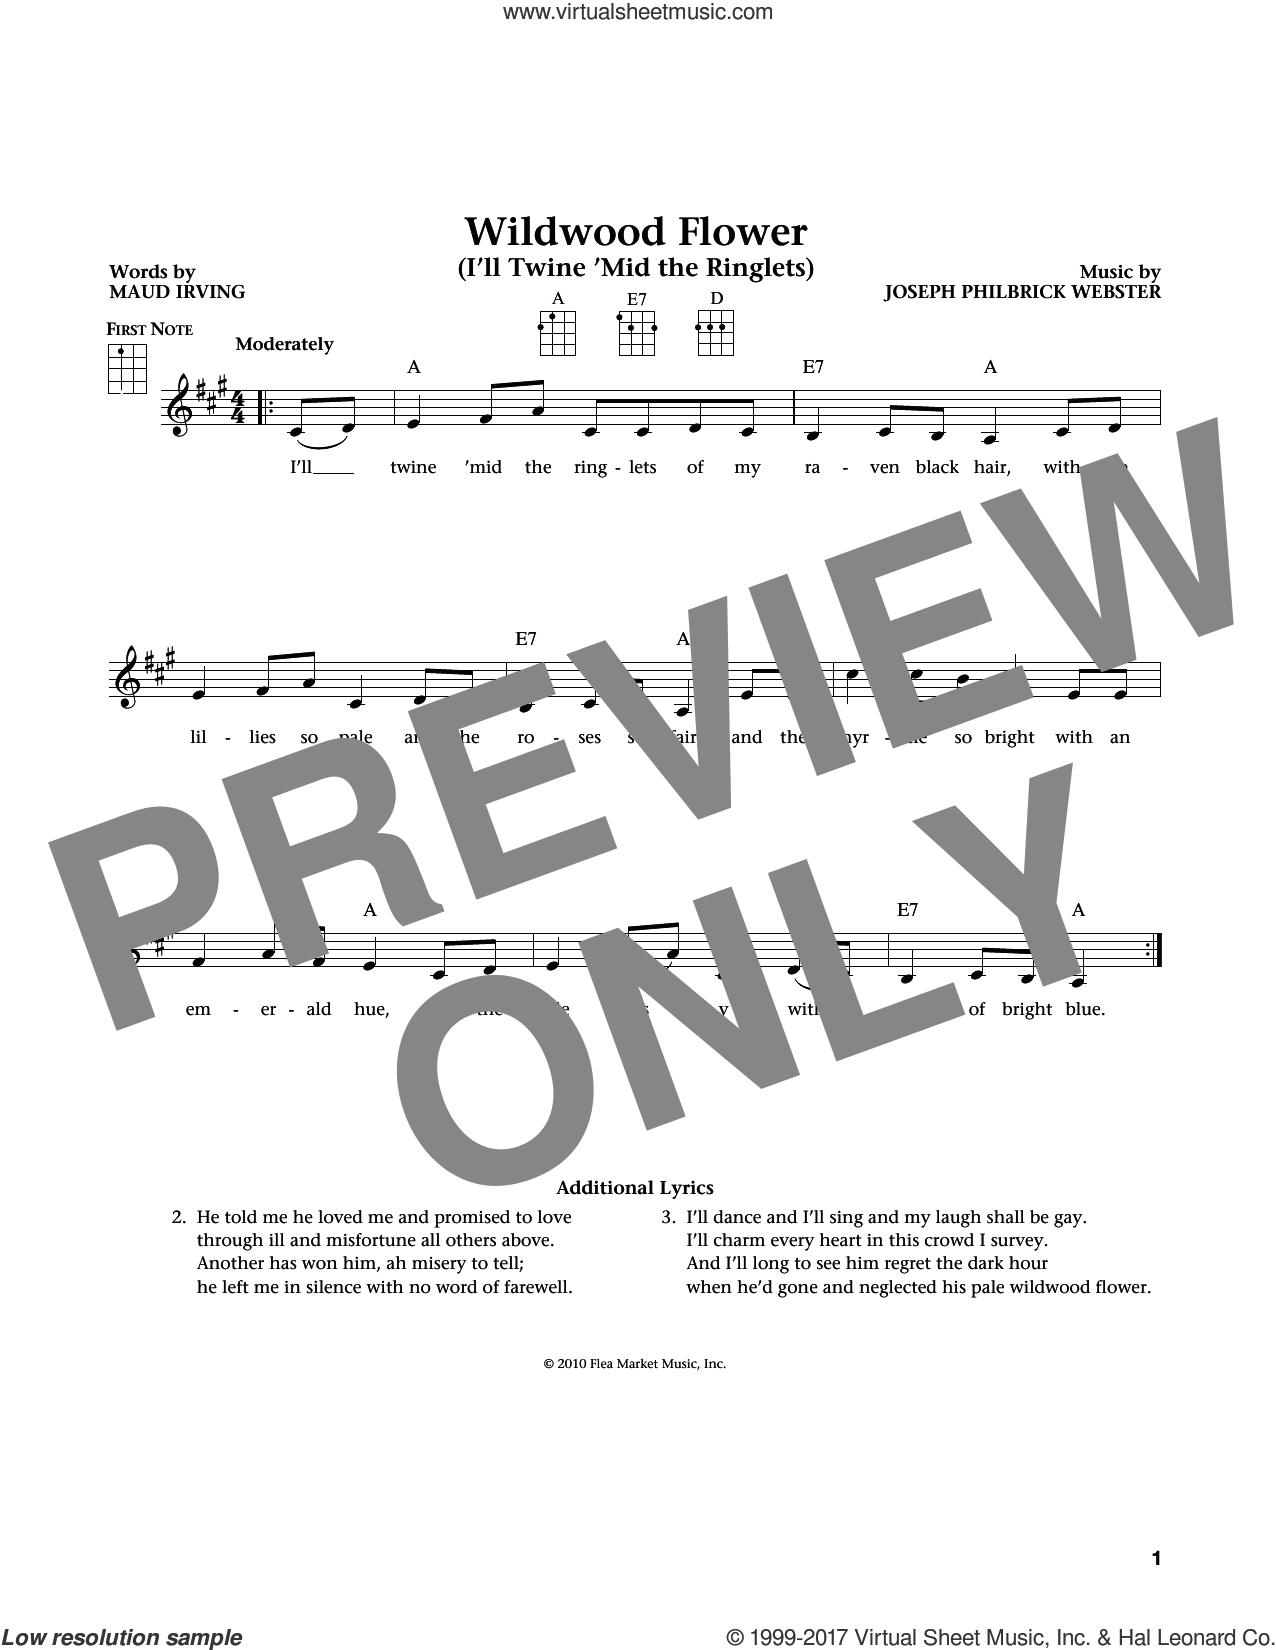 Wildwood Flower (from The Daily Ukulele) (arr. Liz and Jim Beloff) sheet music for ukulele , Jim Beloff and Liz Beloff, intermediate skill level